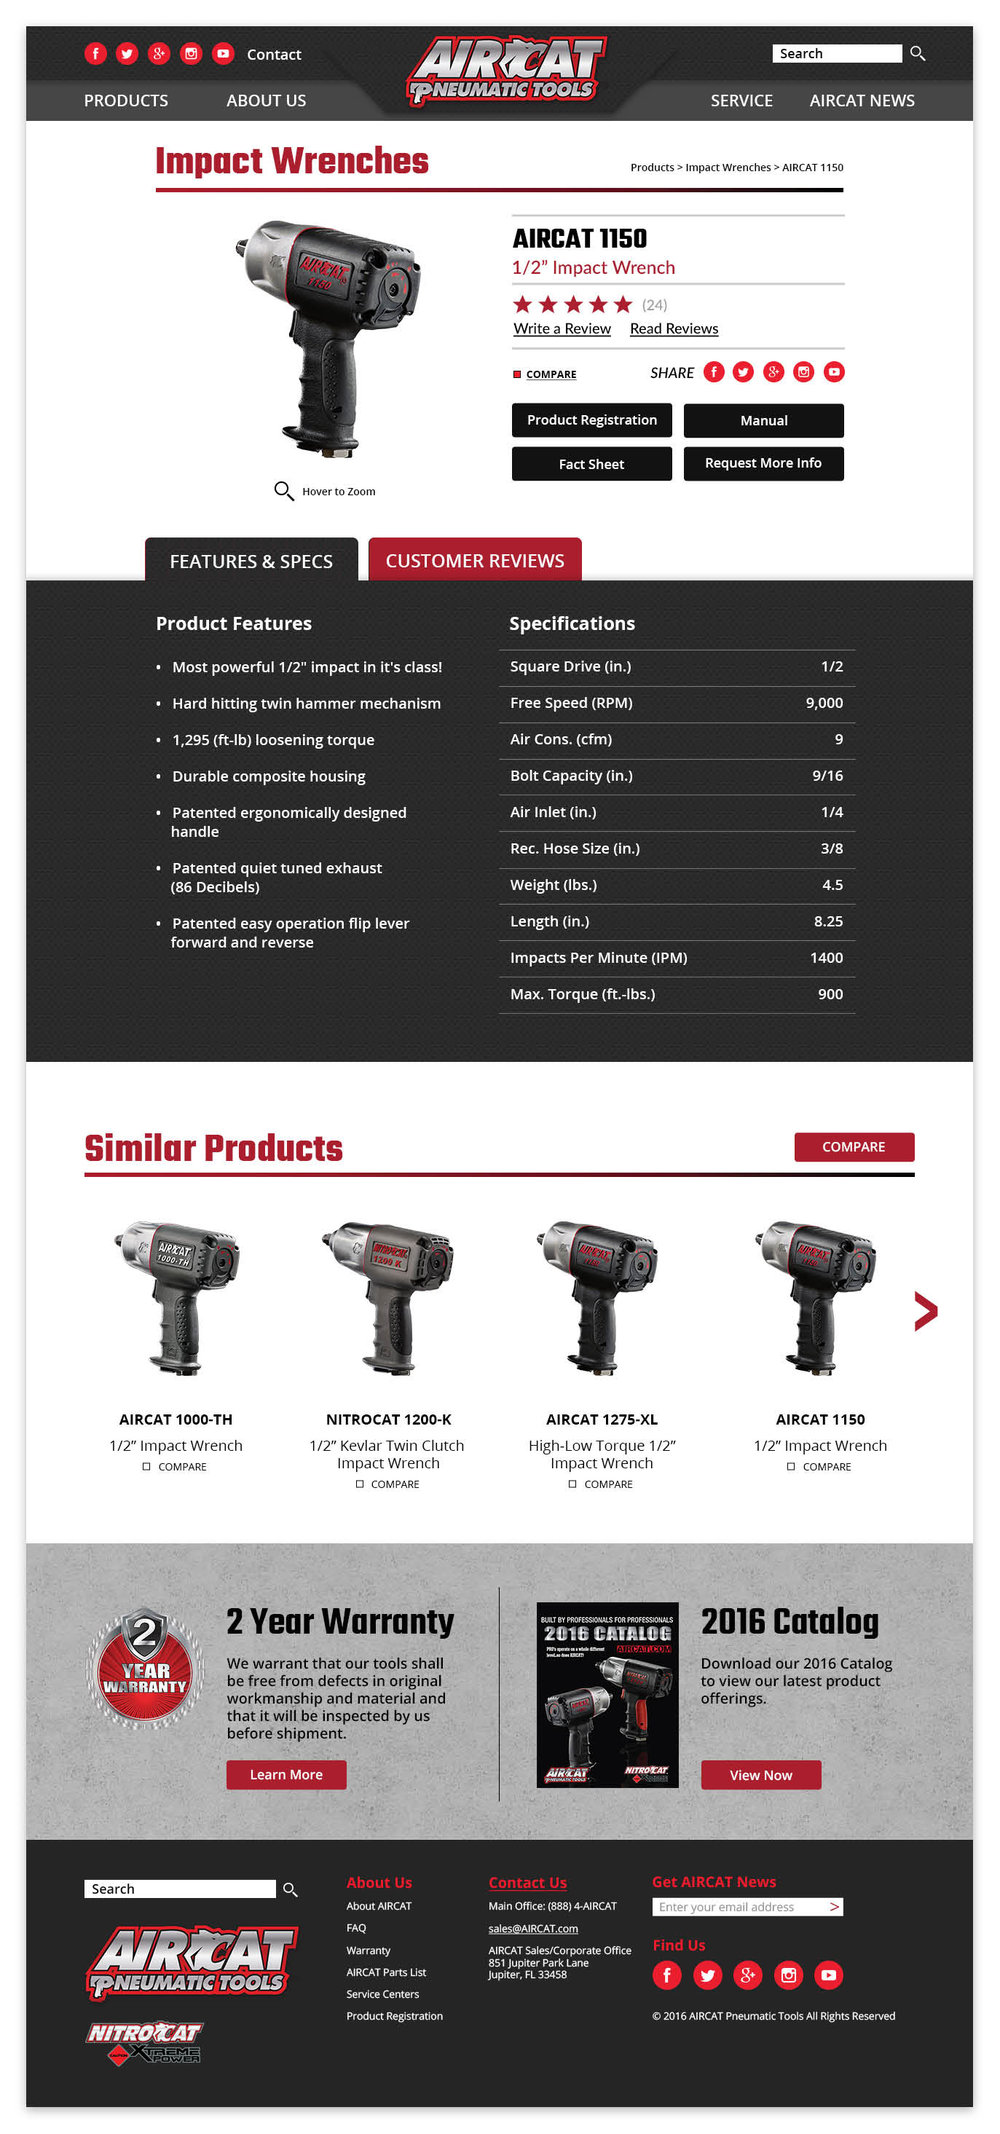 AIRCAT Product Detail Page